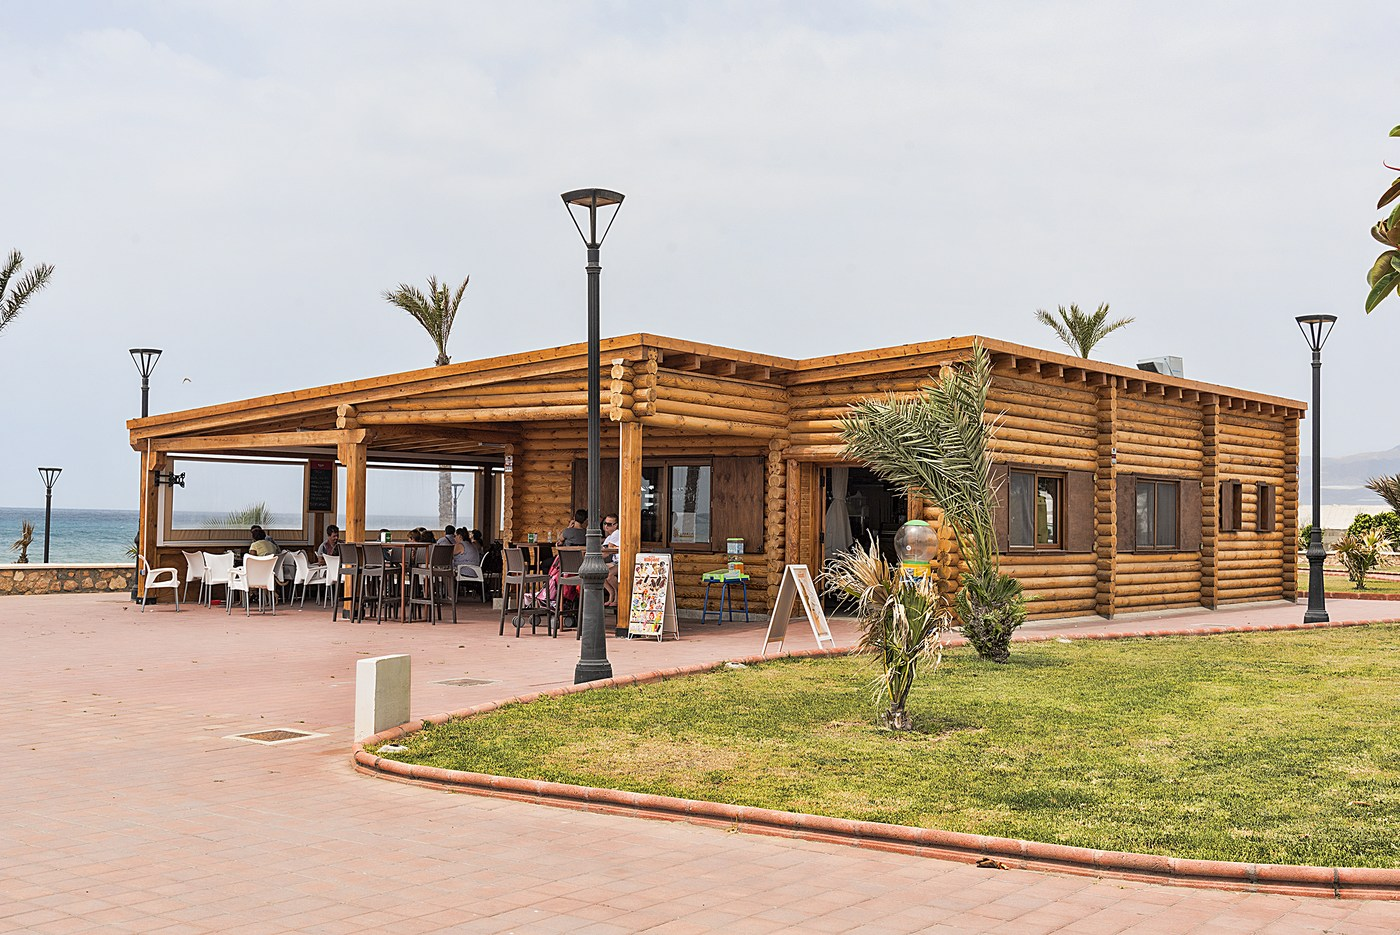 Building of wooden cafes and restaurants